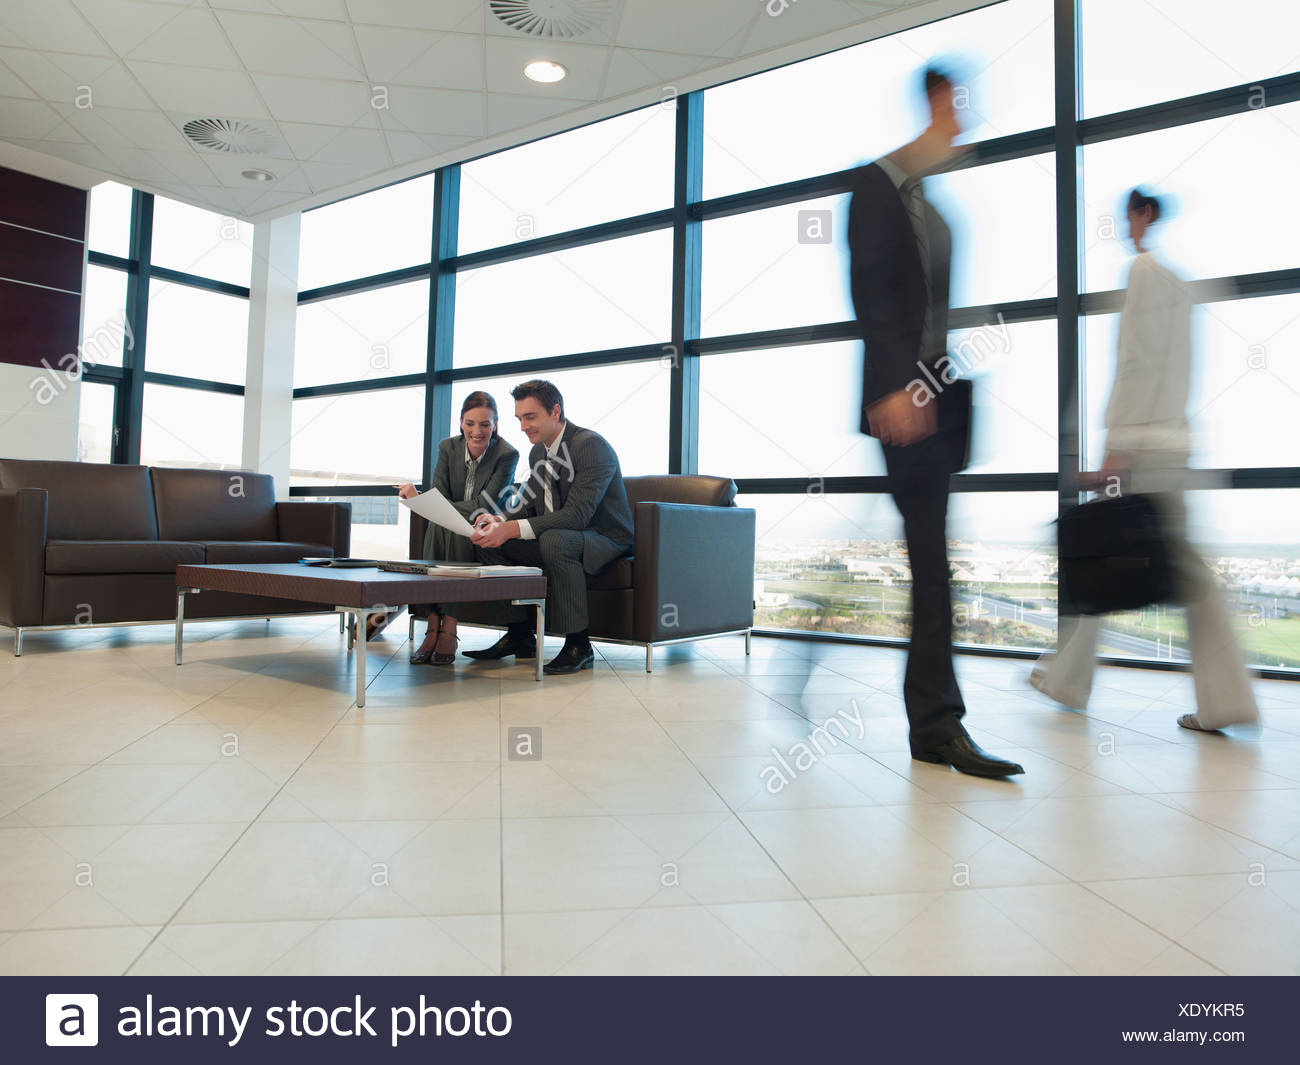 Business people working together in office waiting area - Stock Image